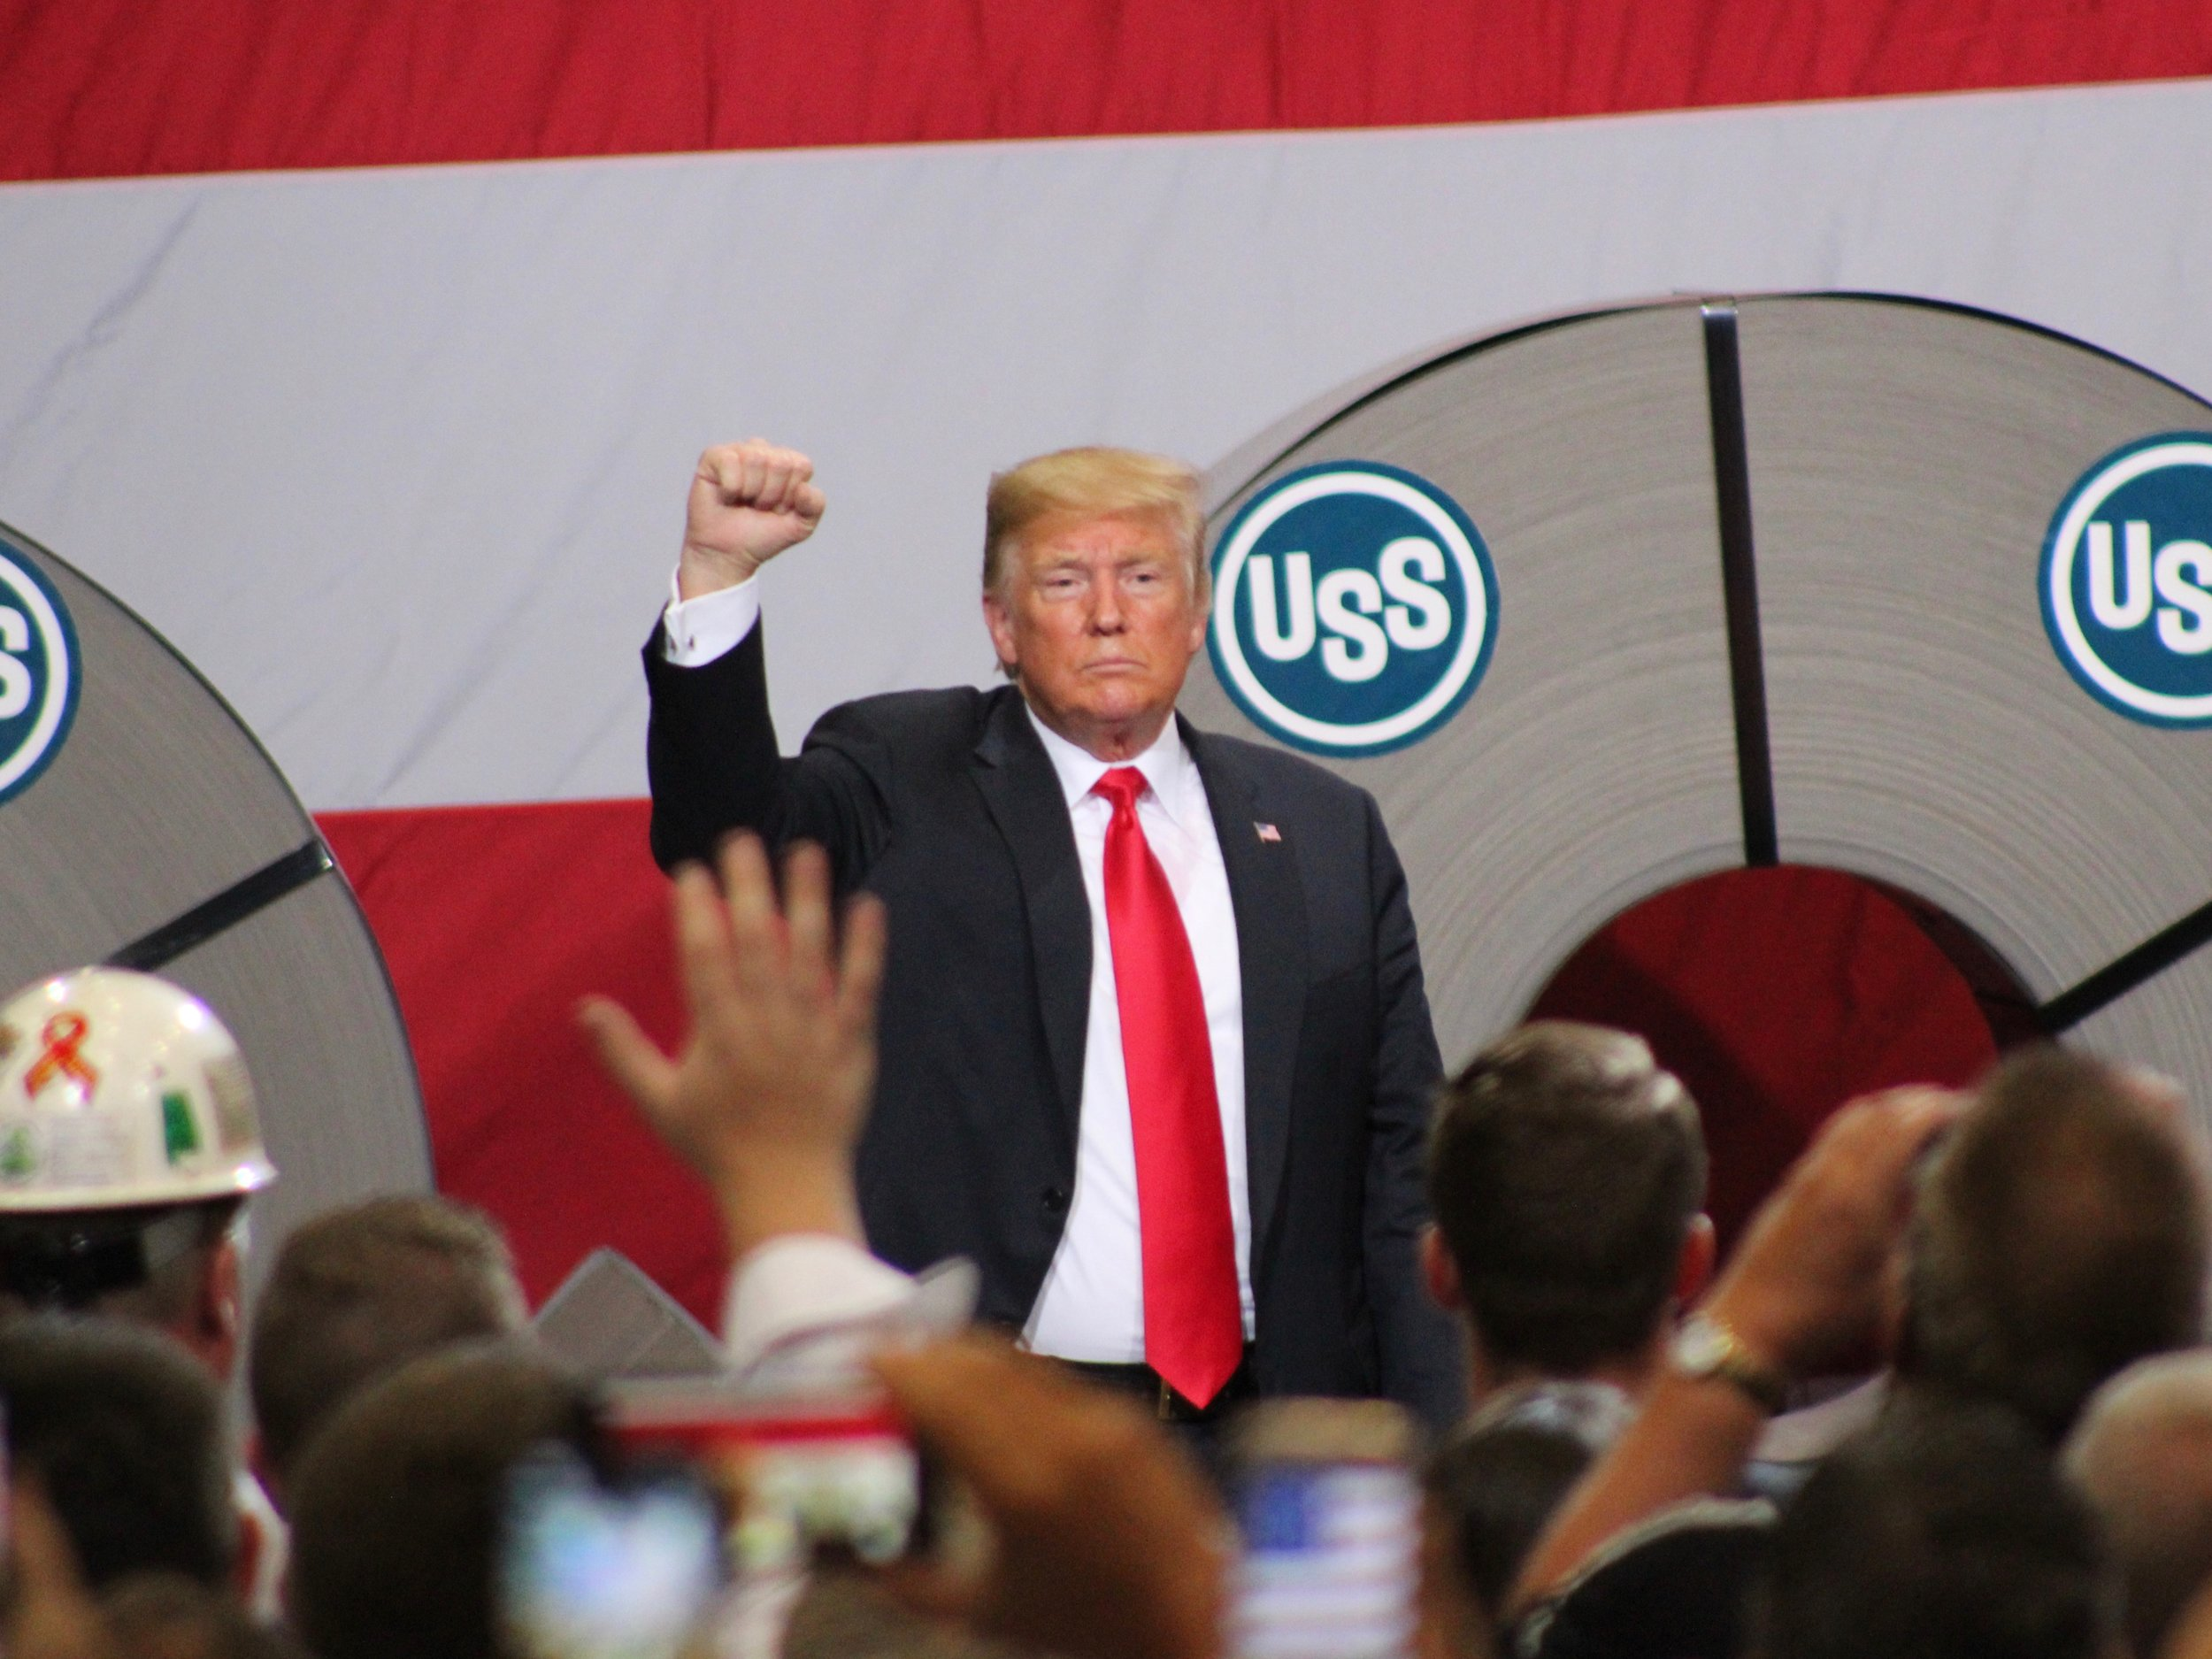 President Trump proclaims solidarity with steelworkers at the end of his speech at U.S. Steel's Granite City Works. (One Illinois/Ted Cox)